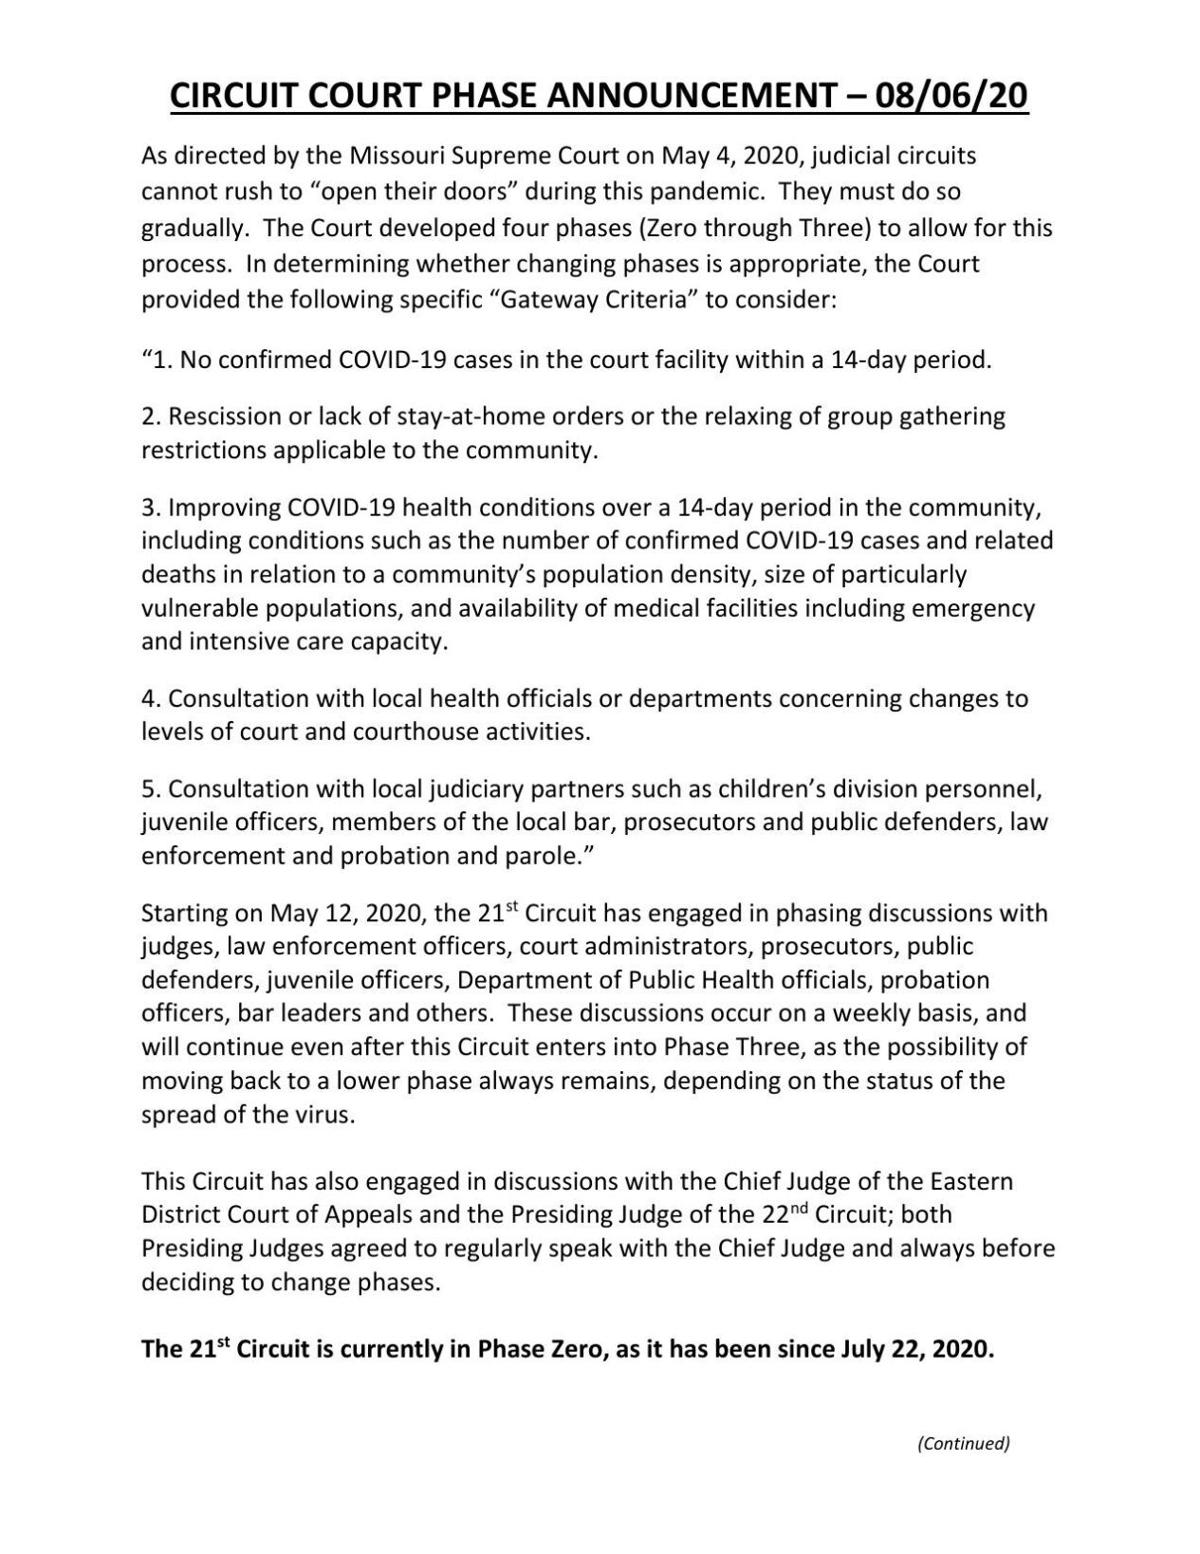 St. Louis County Circuit Court Phase Announcement